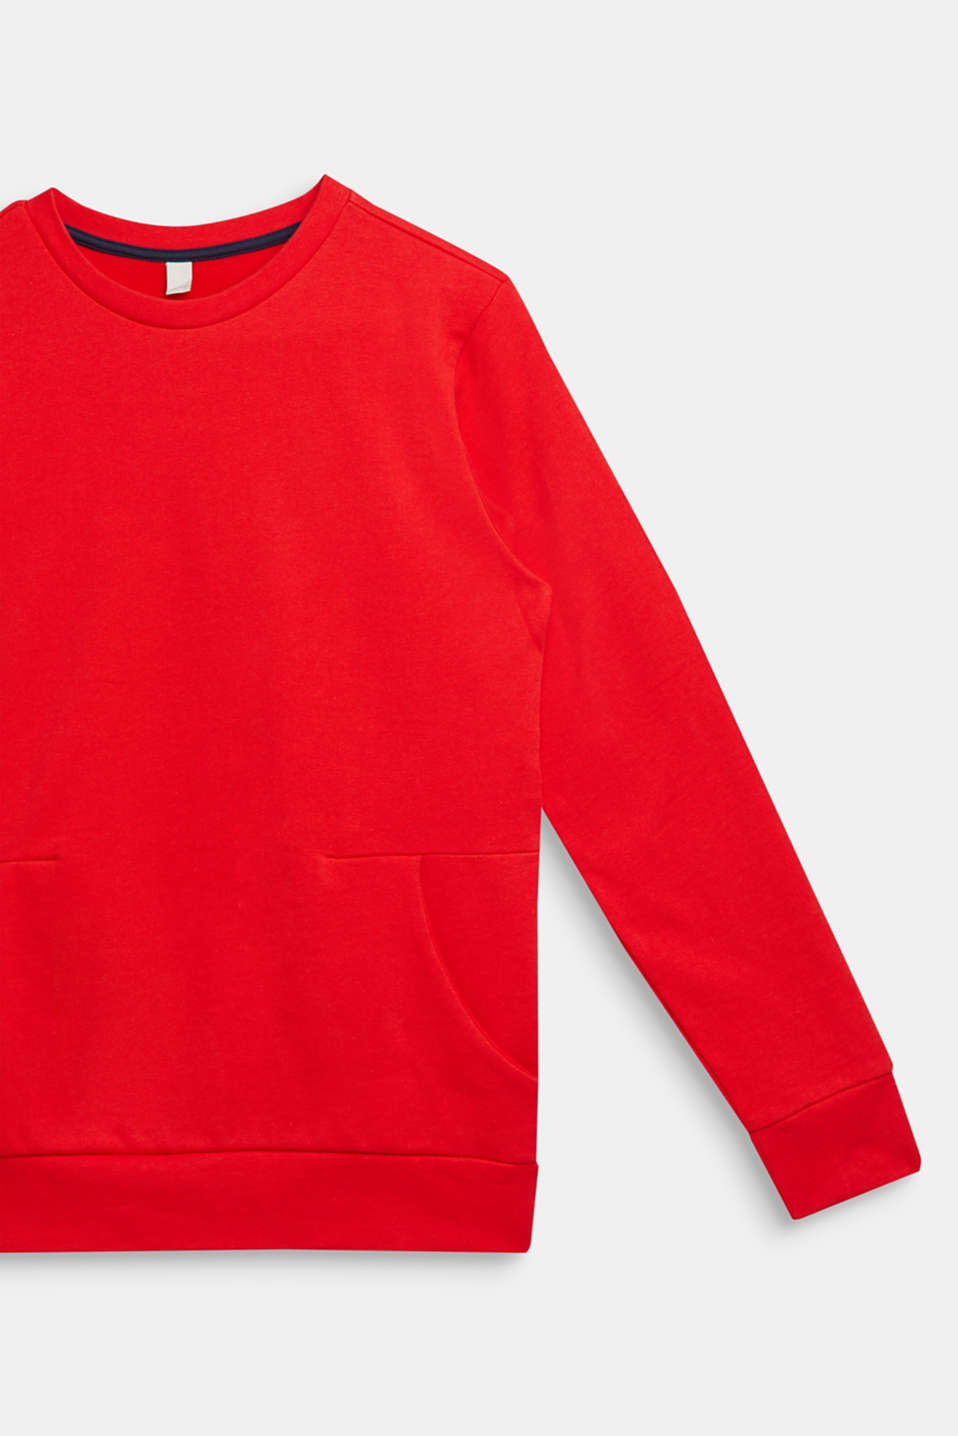 Logo print sweatshirt, 100% cotton, LCRED, detail image number 2